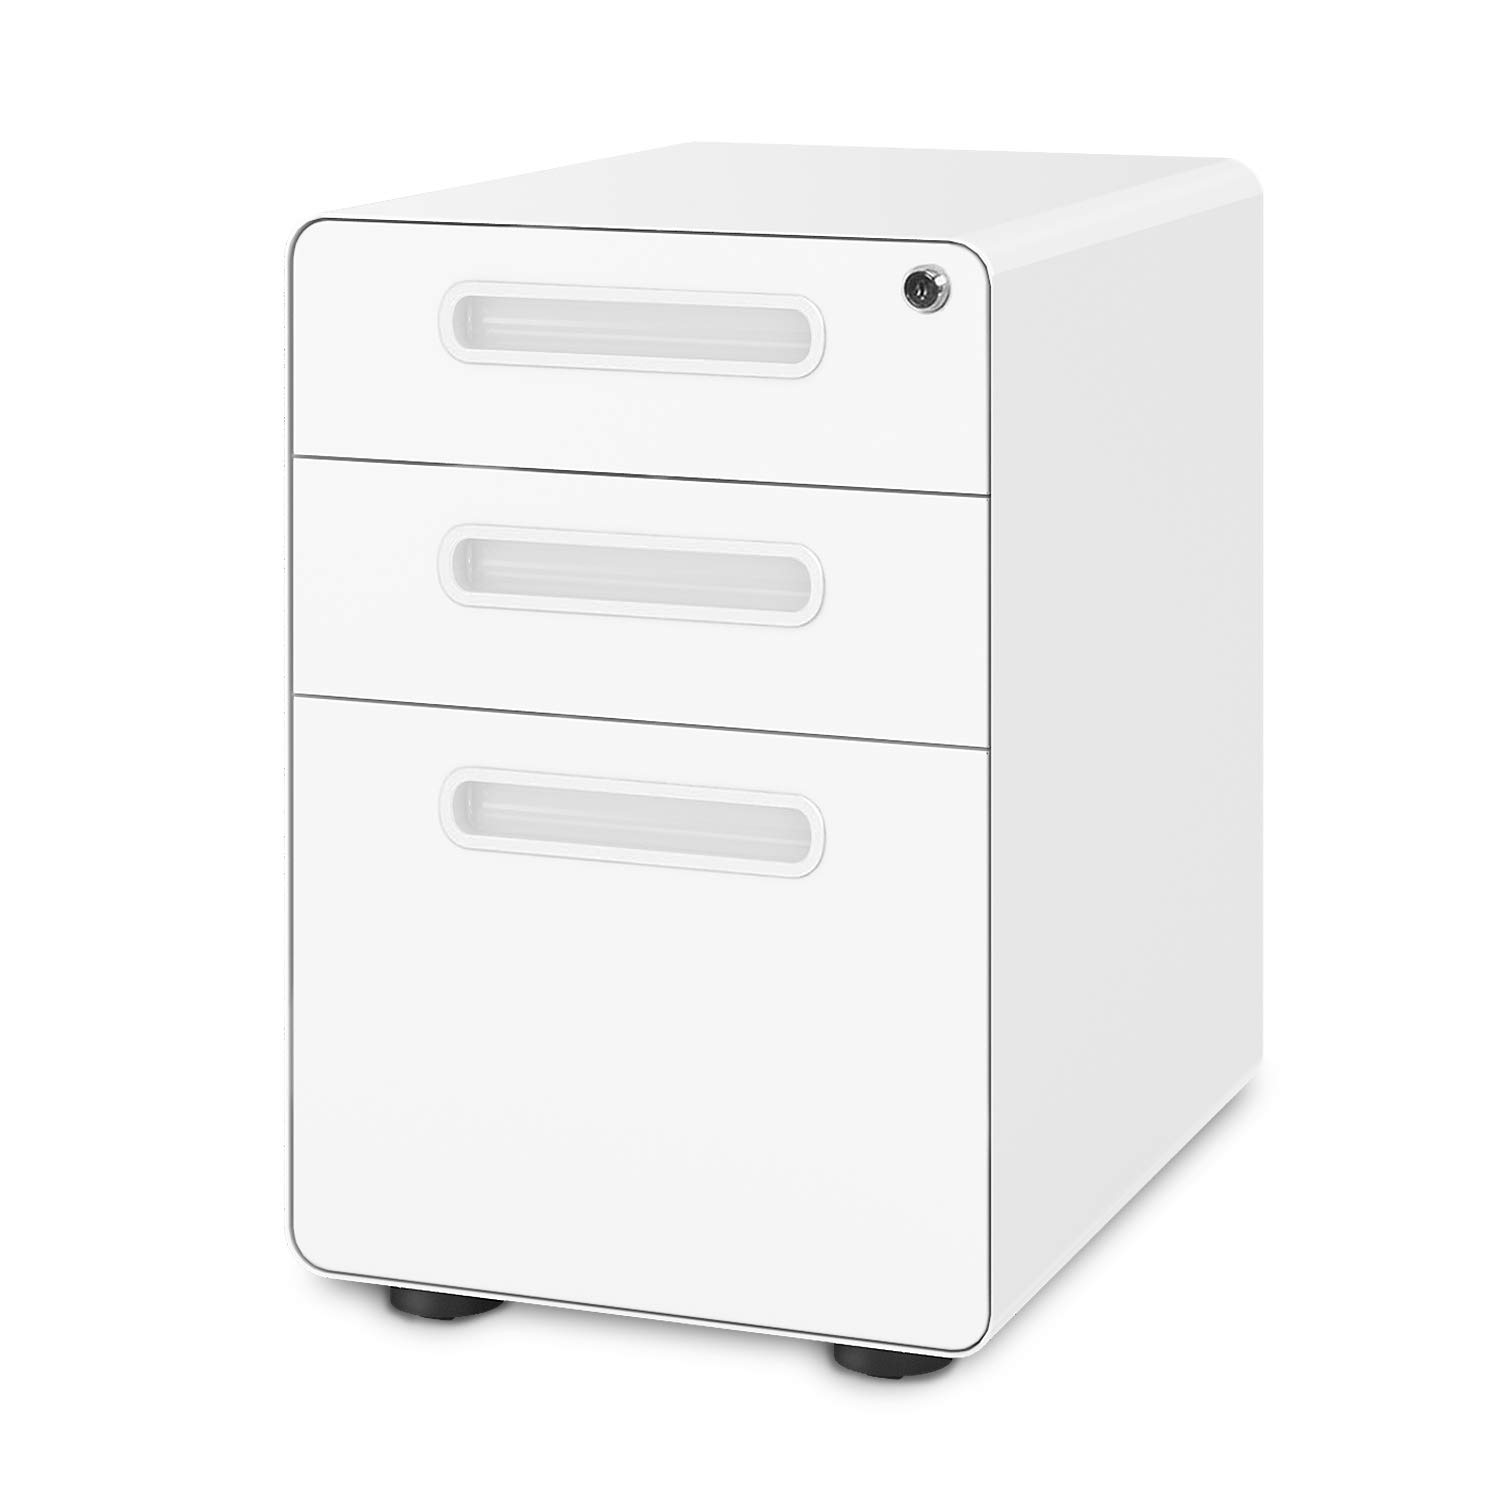 DEVAISE 3-Drawer Mobile File Cabinet with Anti-tilt Mechanism,Legal/Letter Size,White by DEVAISE